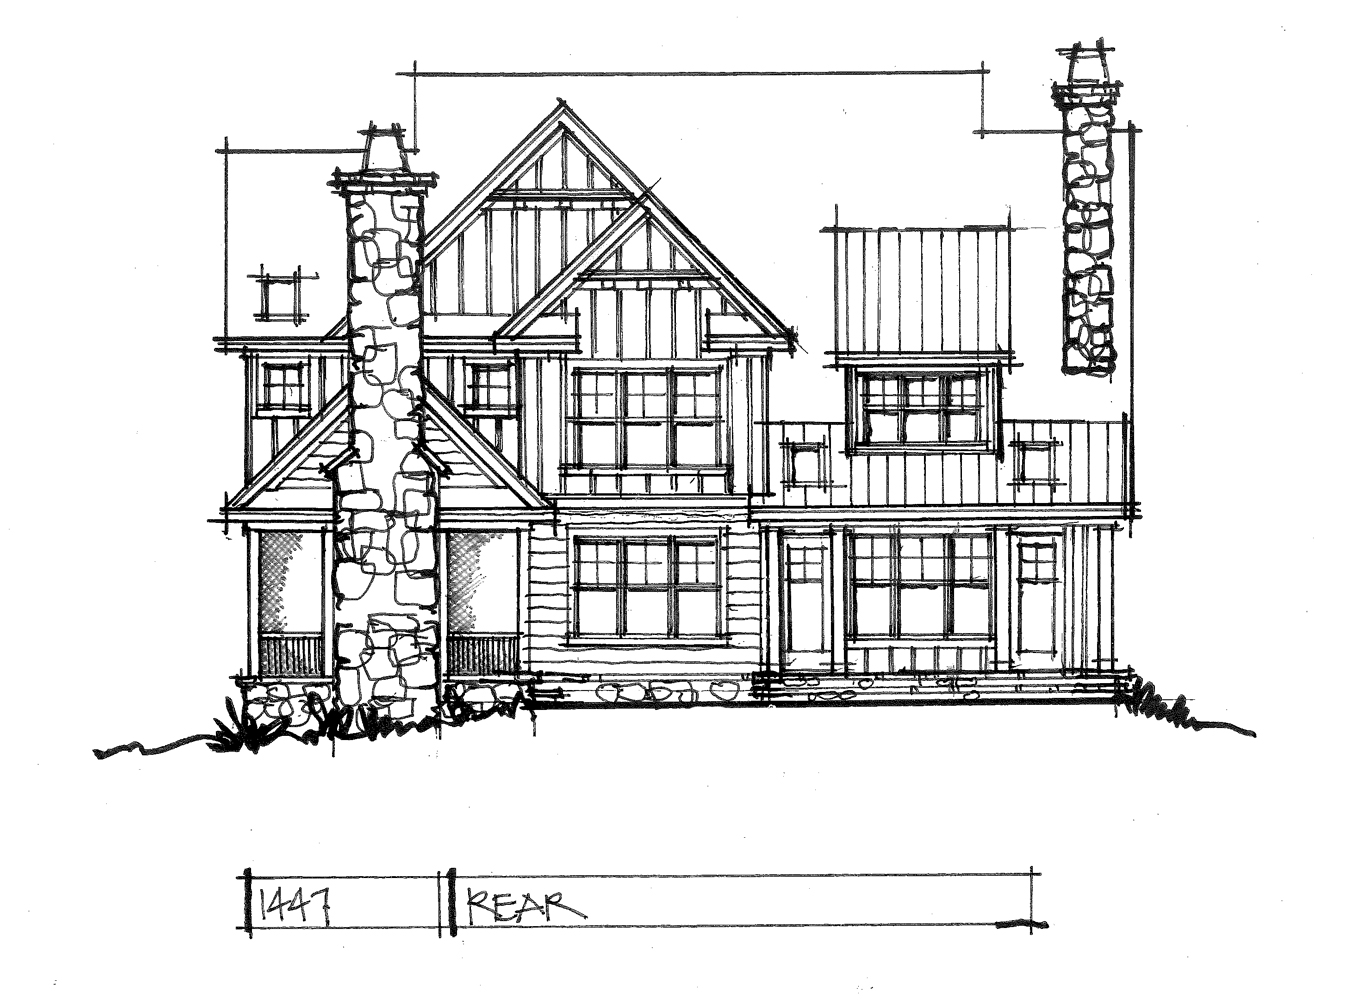 Check out the rear elevation of house plan 1447.